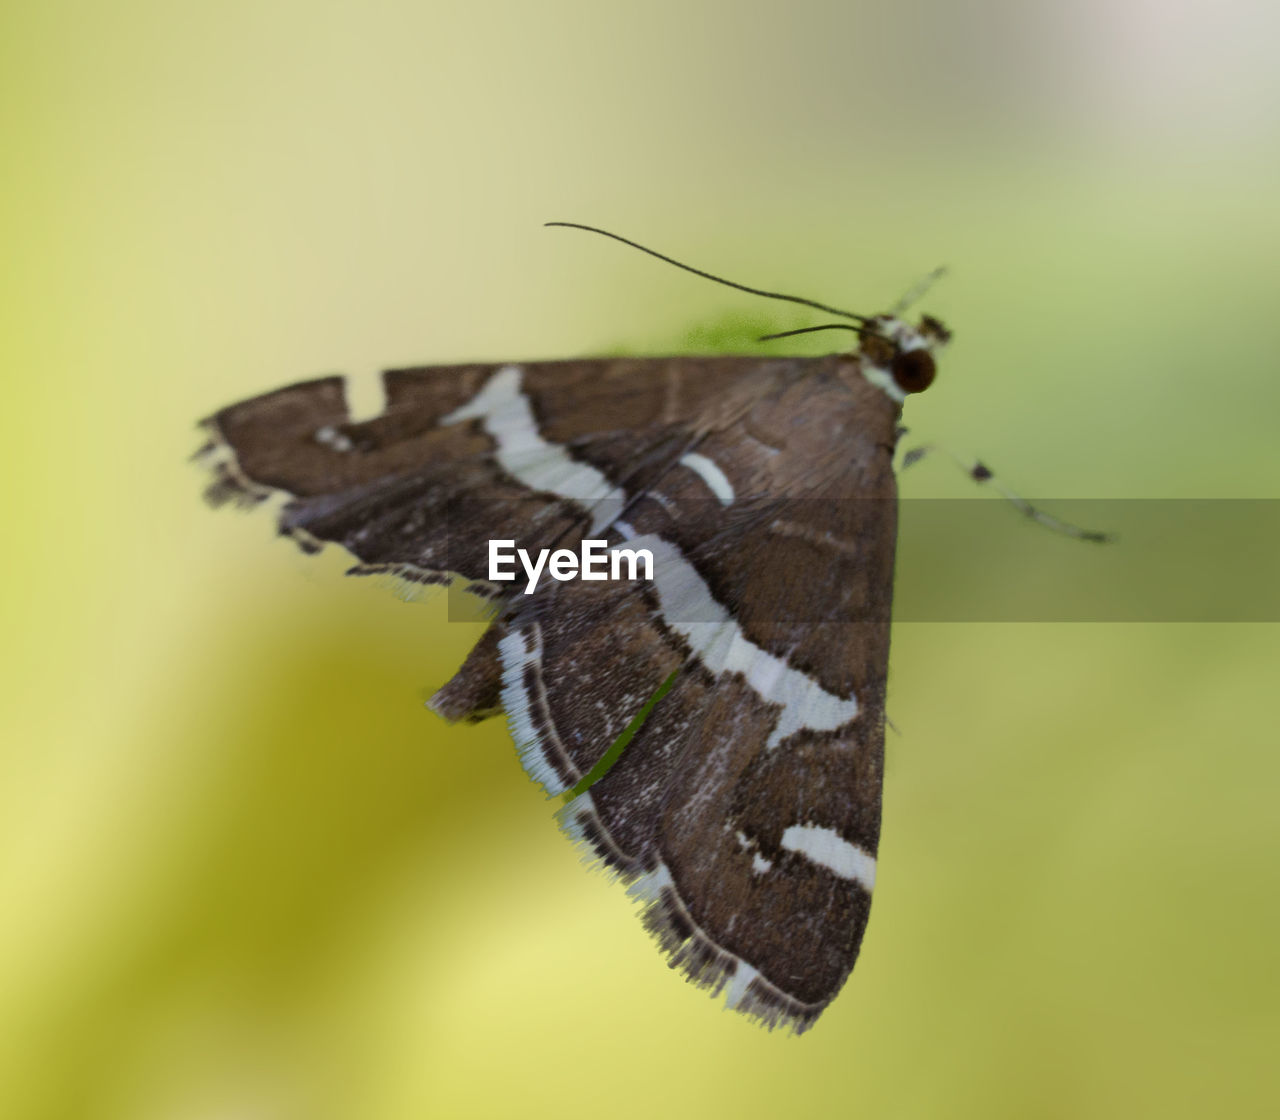 insect, invertebrate, one animal, animal wing, animal themes, animal wildlife, butterfly - insect, animal, animals in the wild, beauty in nature, close-up, no people, focus on foreground, nature, day, animal body part, moth, full length, butterfly, animal antenna